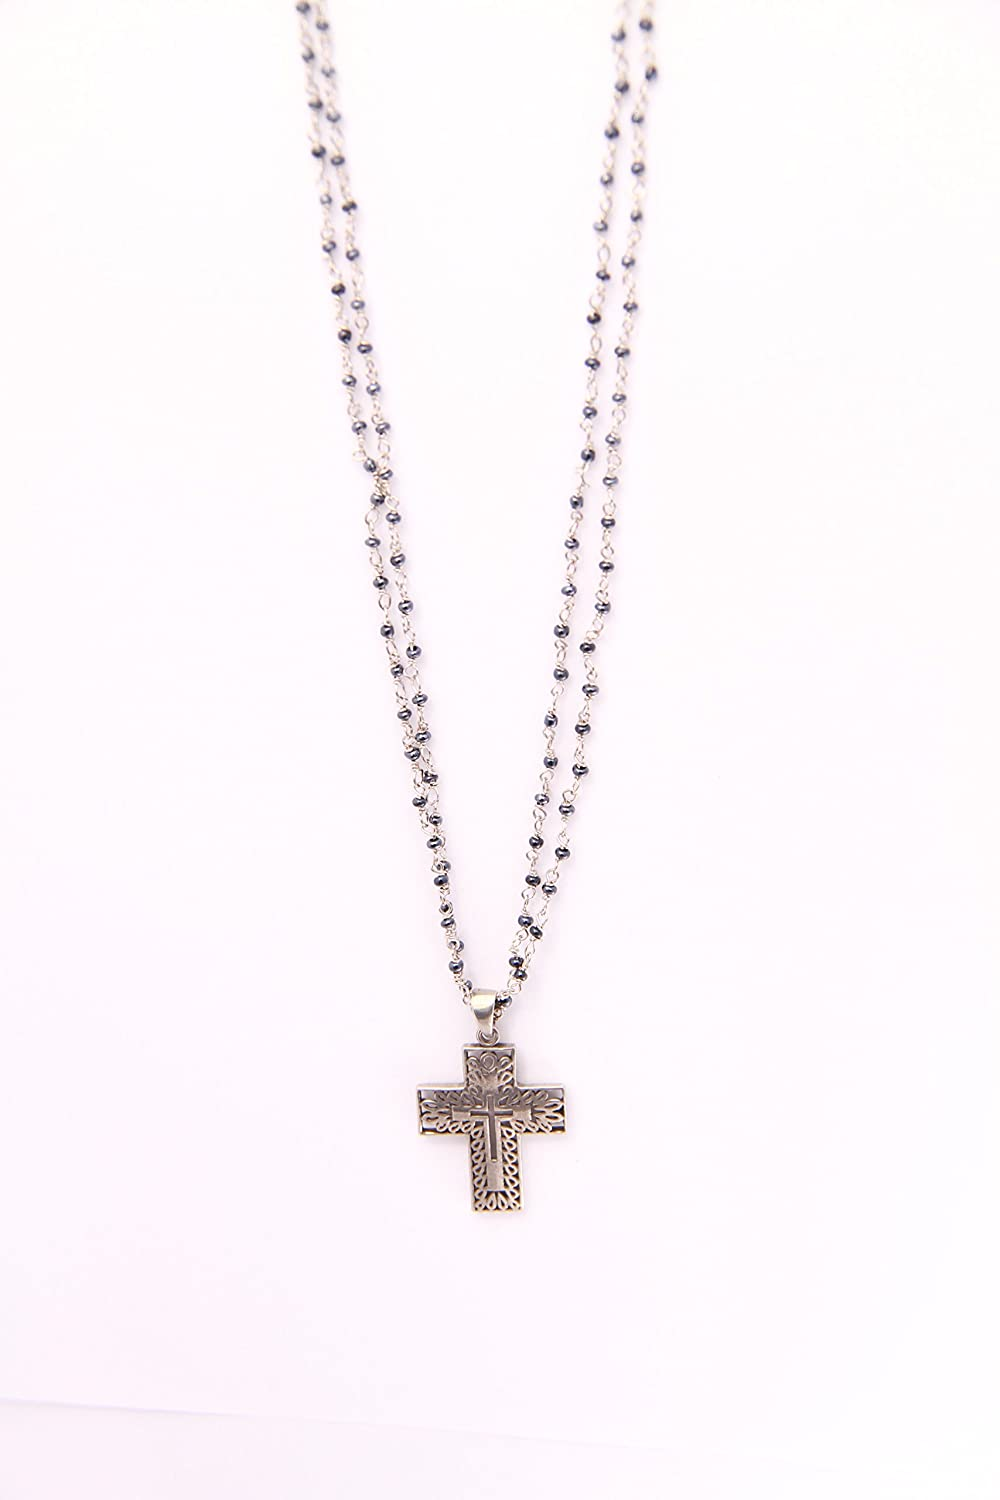 Fine Pewter with a Light Cross Necklace 16 Inch Long Hand Made Silver Rosary Onyx Necklace